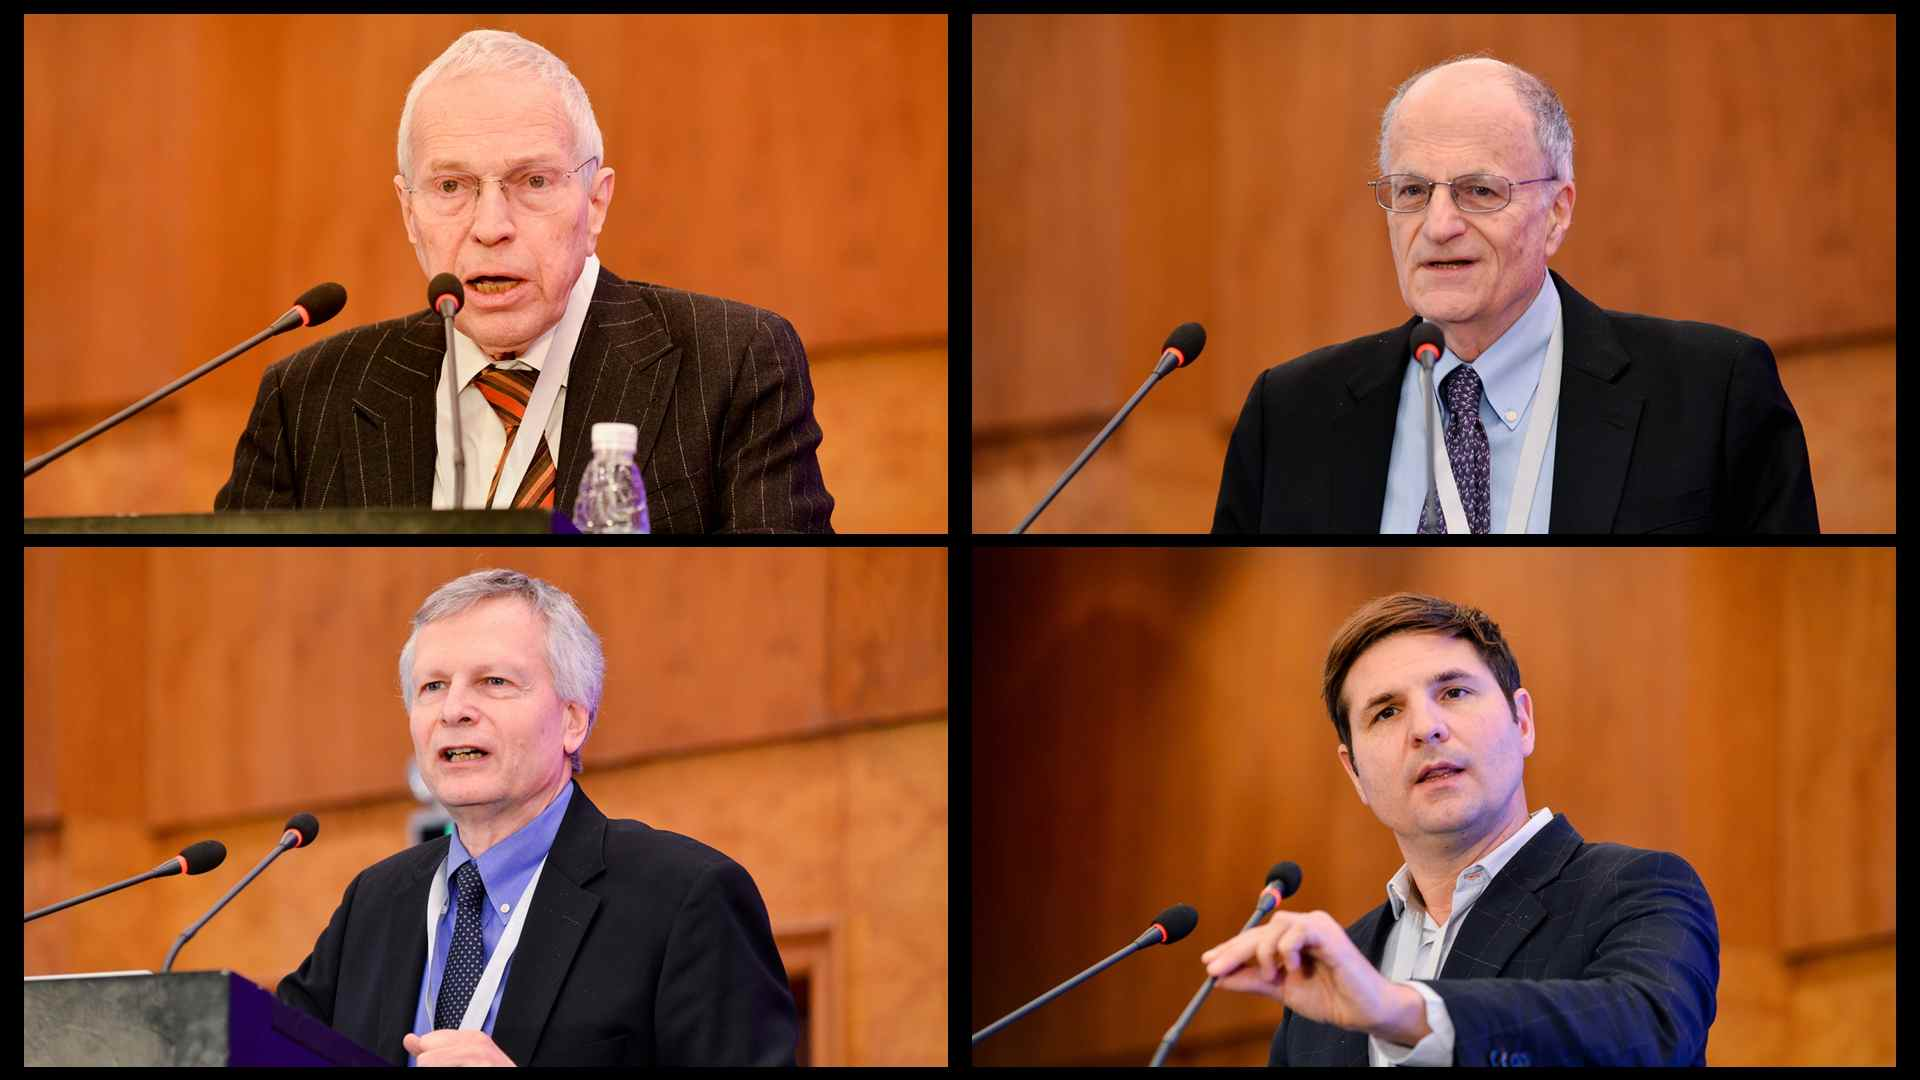 Nobel economists, academics on 40 years of reform and opening up